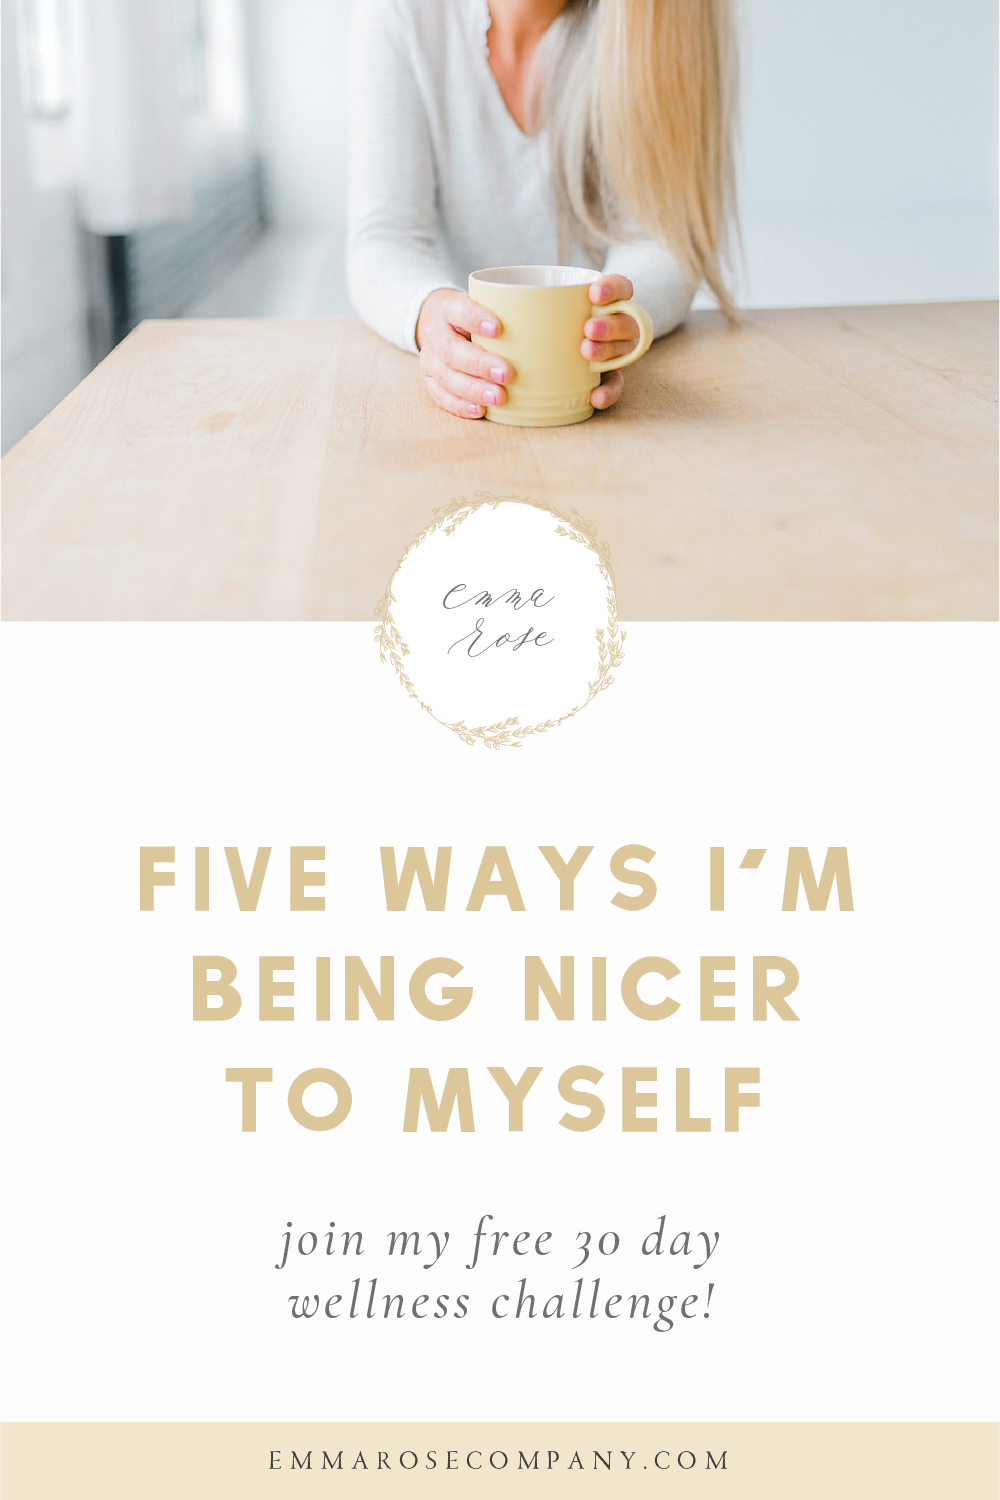 Can we be perfectly honest in saying that running your own business is really hard!  It's amazing, but holds plenty of challenges.  It's important to be nice to yourself along the way through self-care, self-love, and remembering to slow down and rest.  I've put together this post to help you find more #balance and #meaning in your own life.  Feel free to join my 30 day wellness challenge you'll find within the post!  #wellnesschallenge #liveyourbestlife